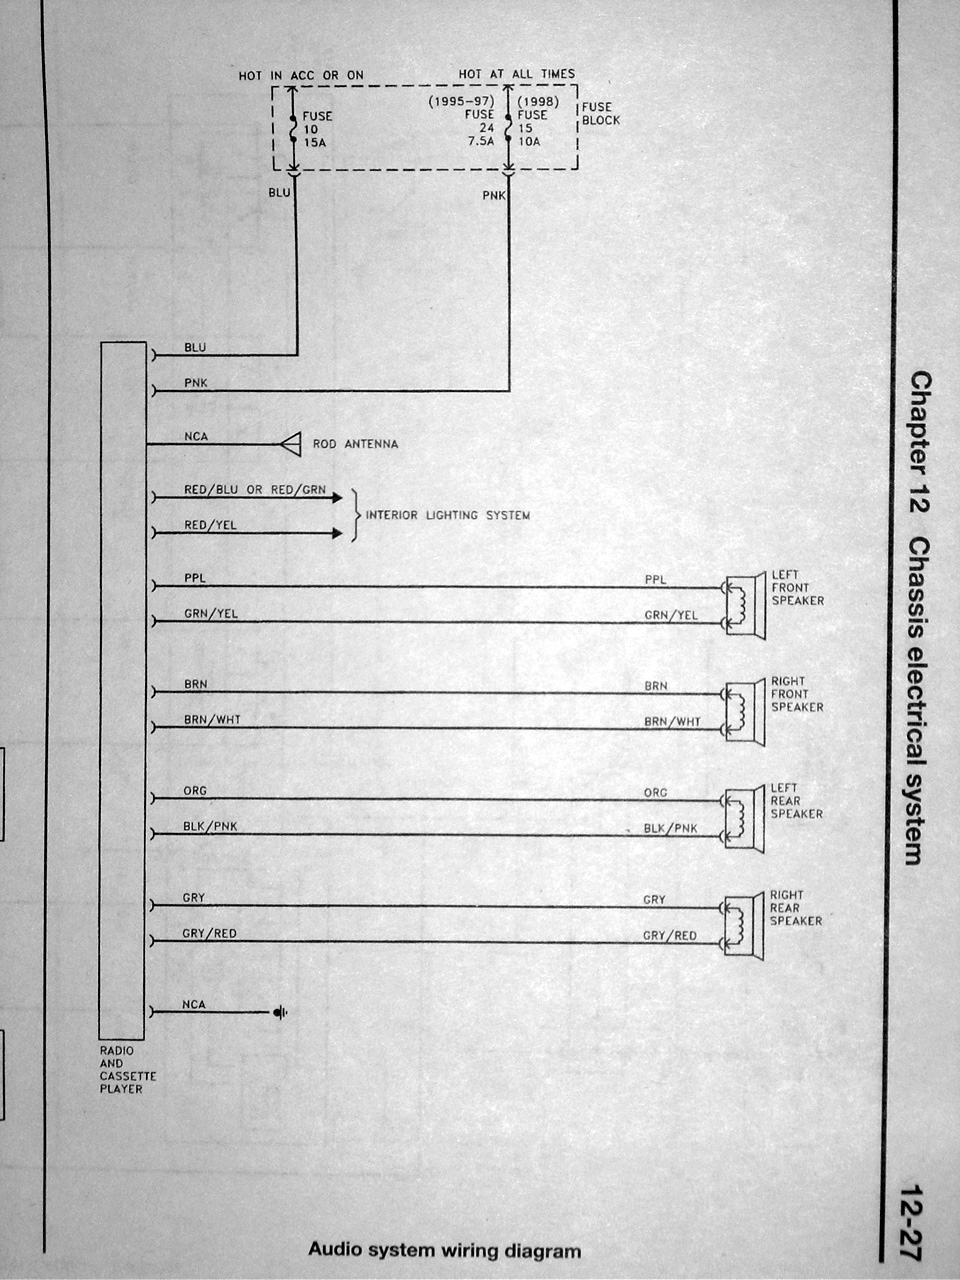 DSC01849 wiring diagram thread *useful info* nissan forum 1994 nissan sentra wiring diagram at honlapkeszites.co